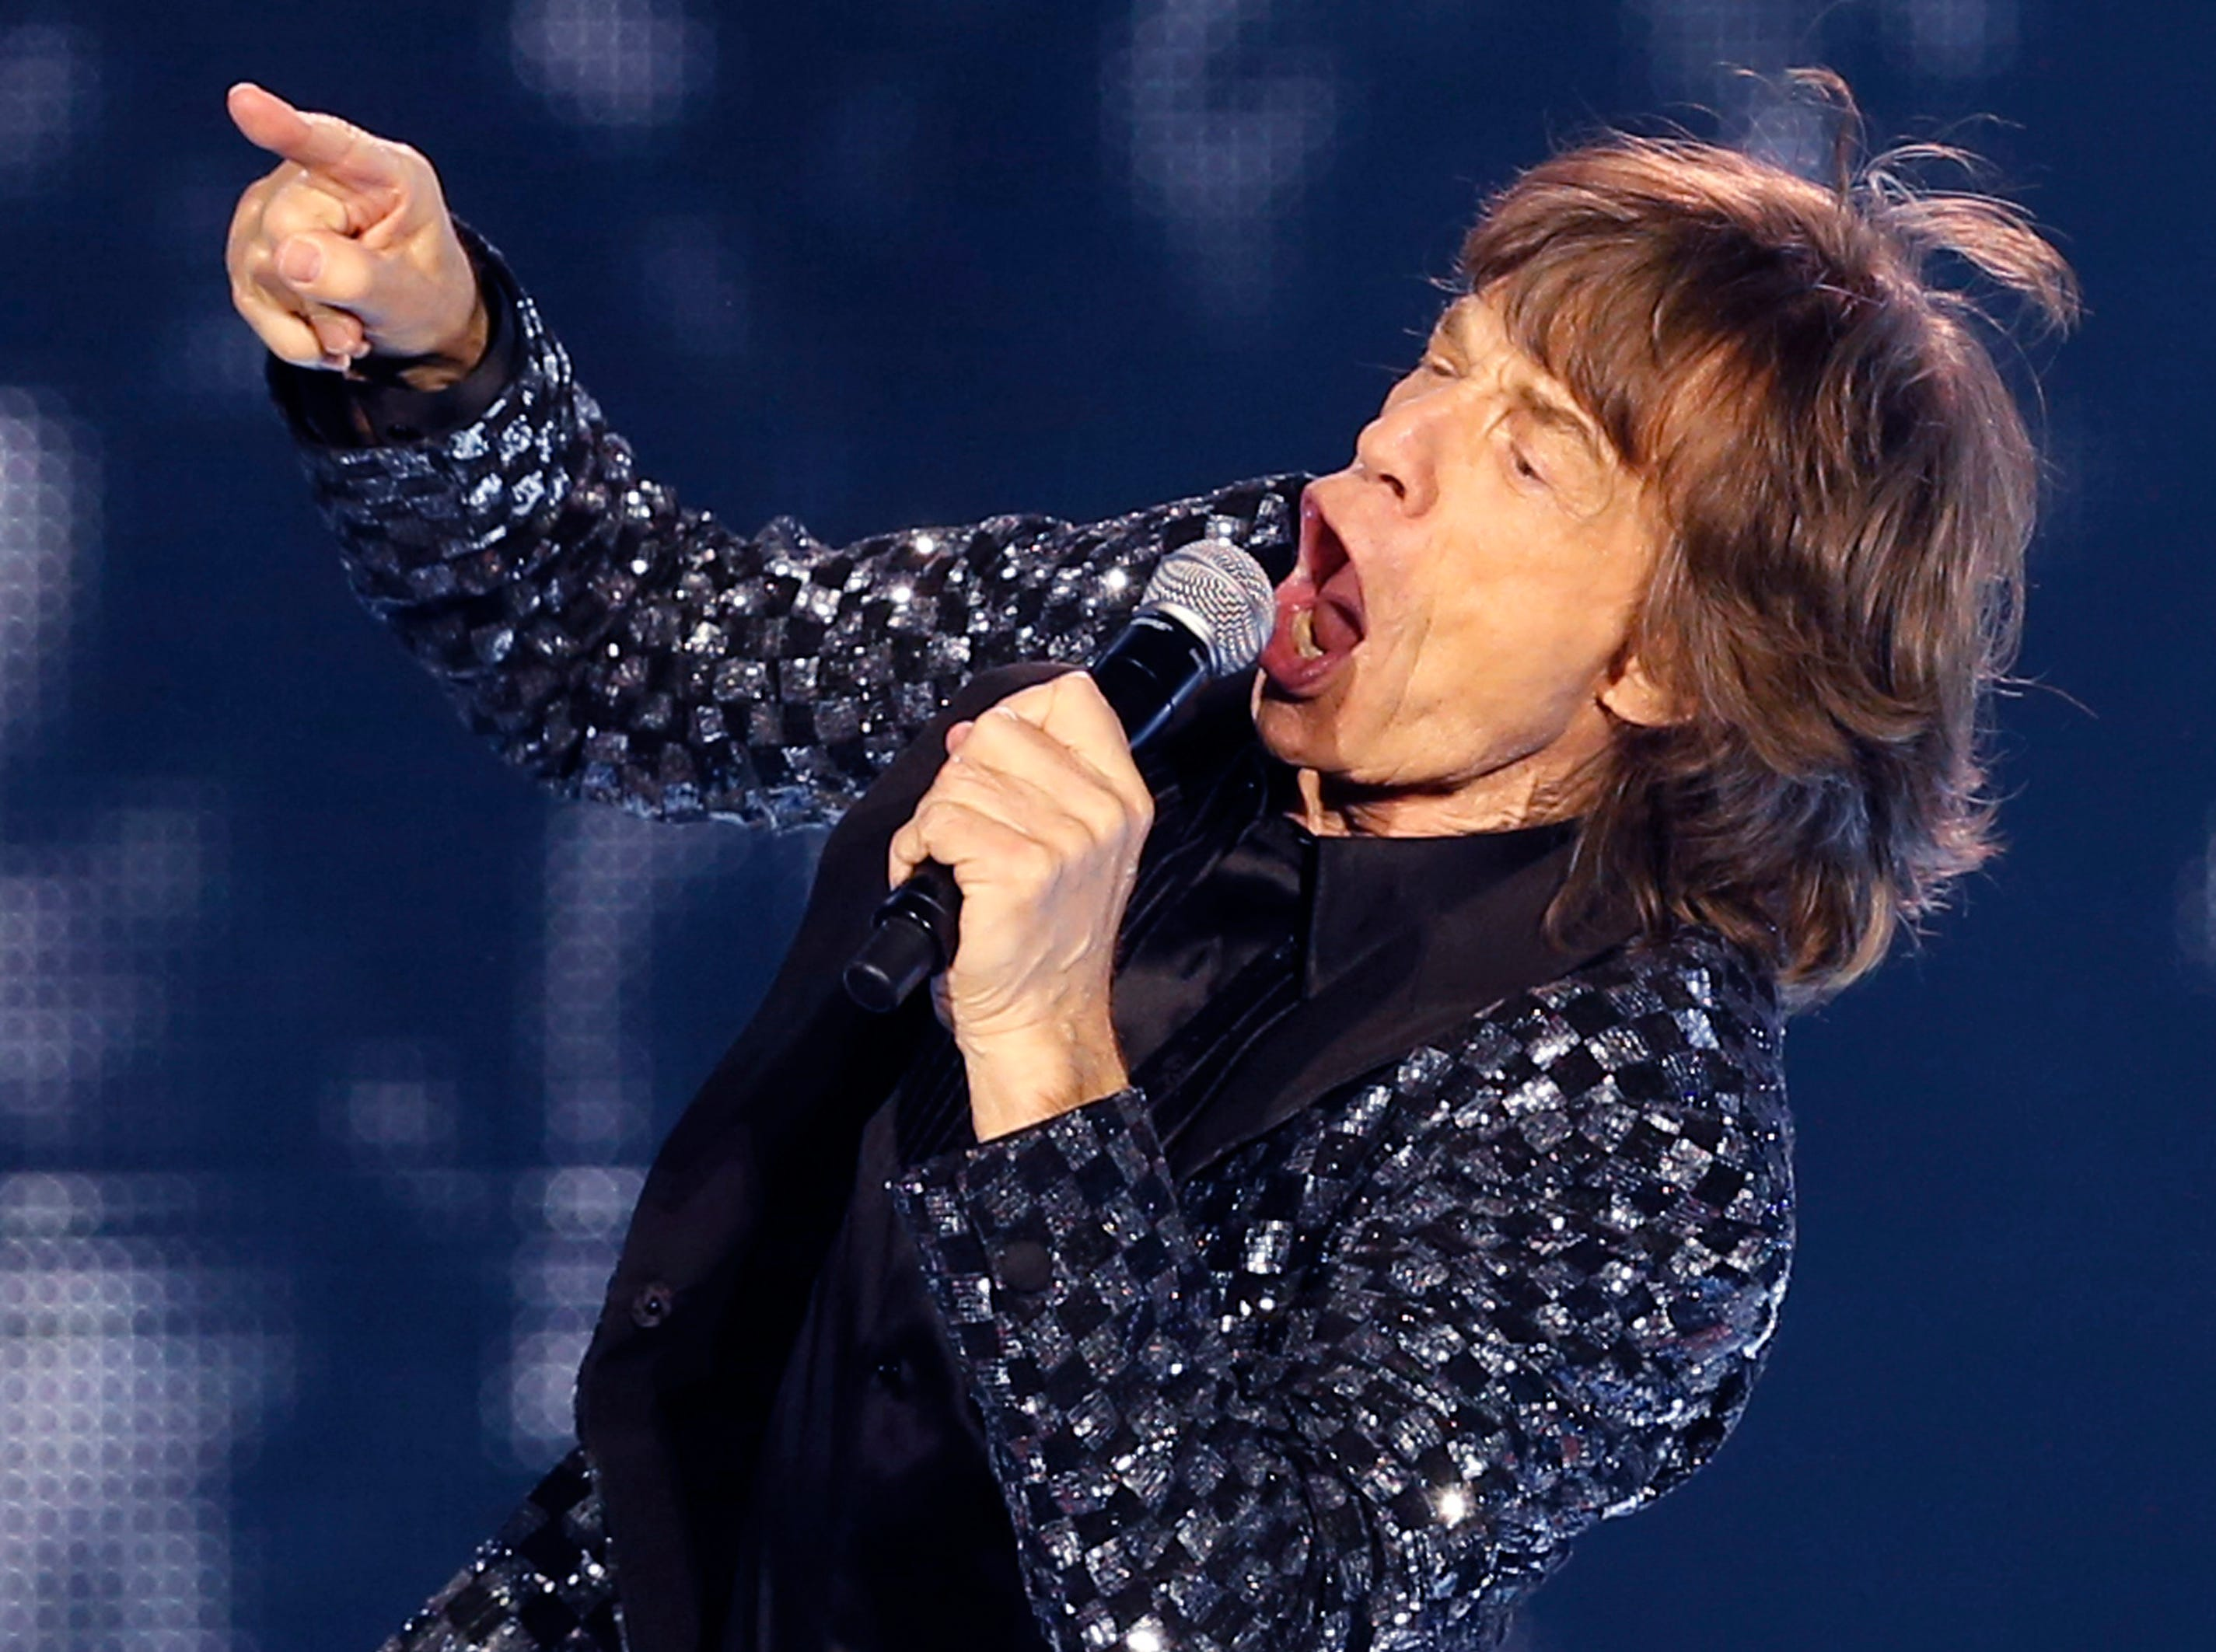 Mick Jagger of The Rolling Stones performs during their concert at Tokyo Dome in Tokyo, Wednesday, Feb. 26, 2014. (AP Photo/Shizuo Kambayashi) ORG XMIT: XKAN101